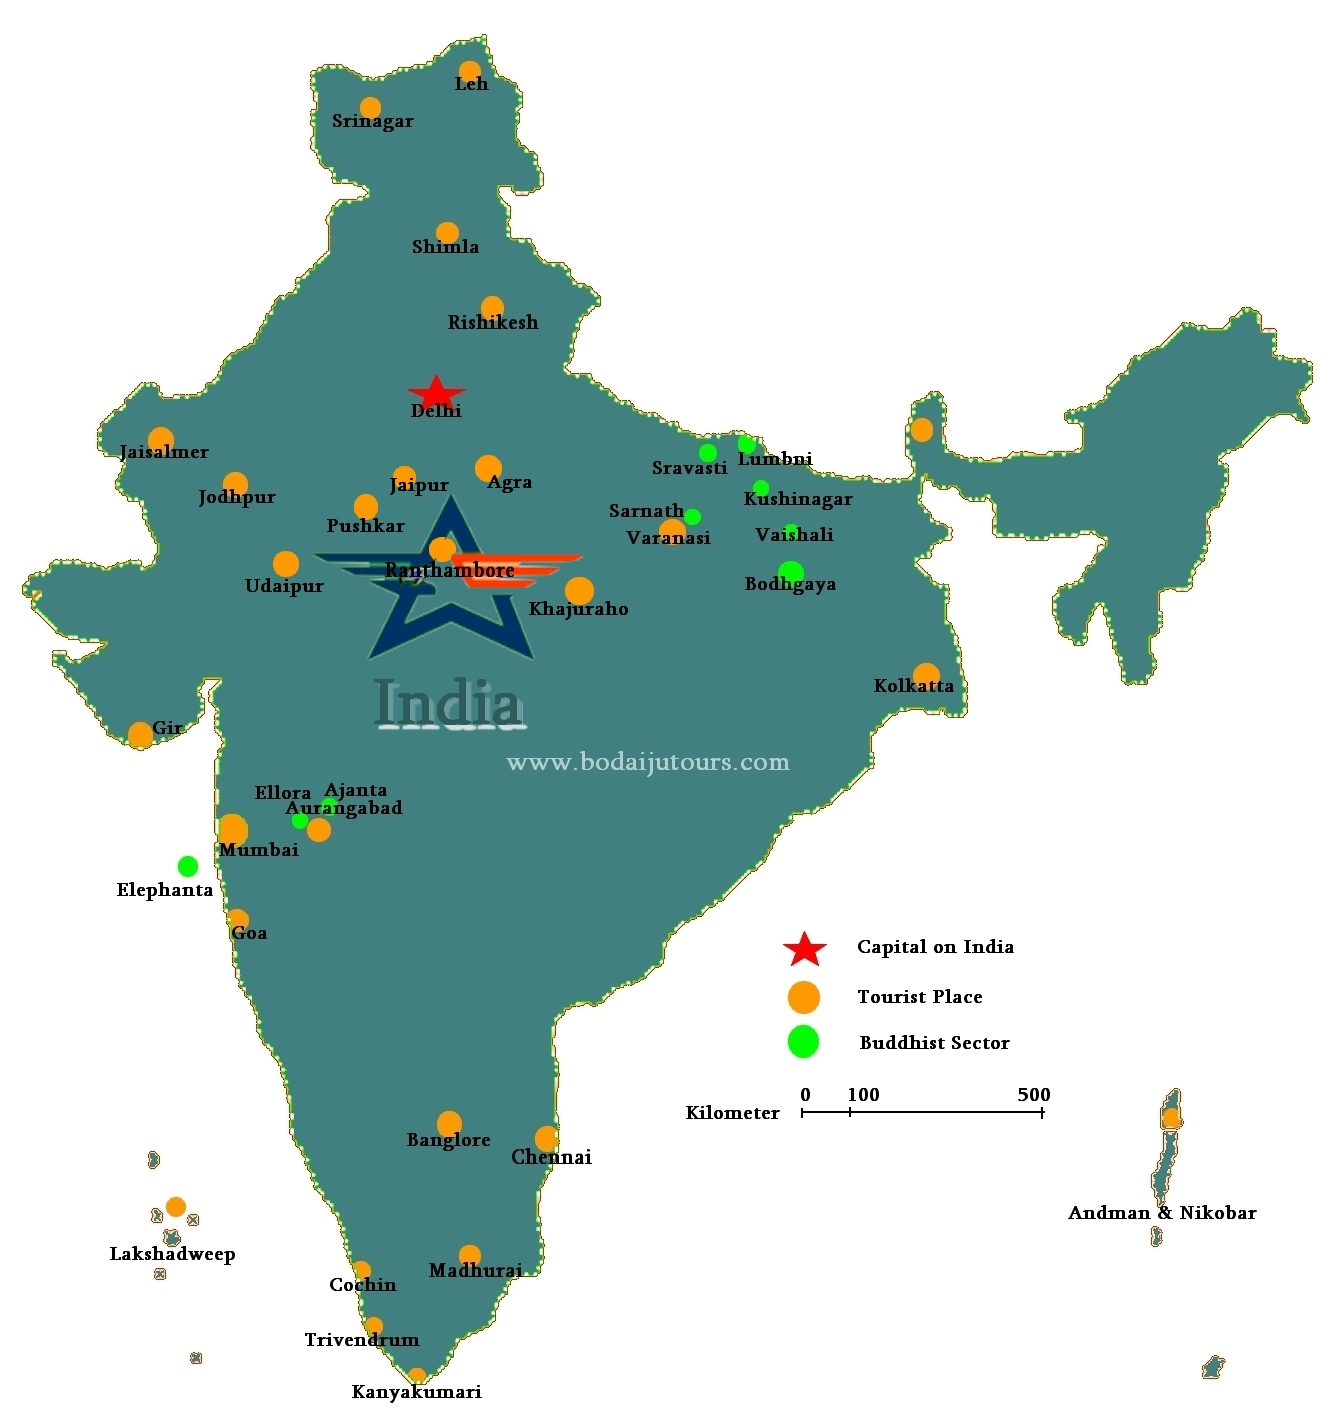 tourism in india Welcome to the official website of ministry of tourism, govt of india the ministry of tourism is running a scheme under which national tourism awards are given to travel agents and tour operators including best adventure tour operator.